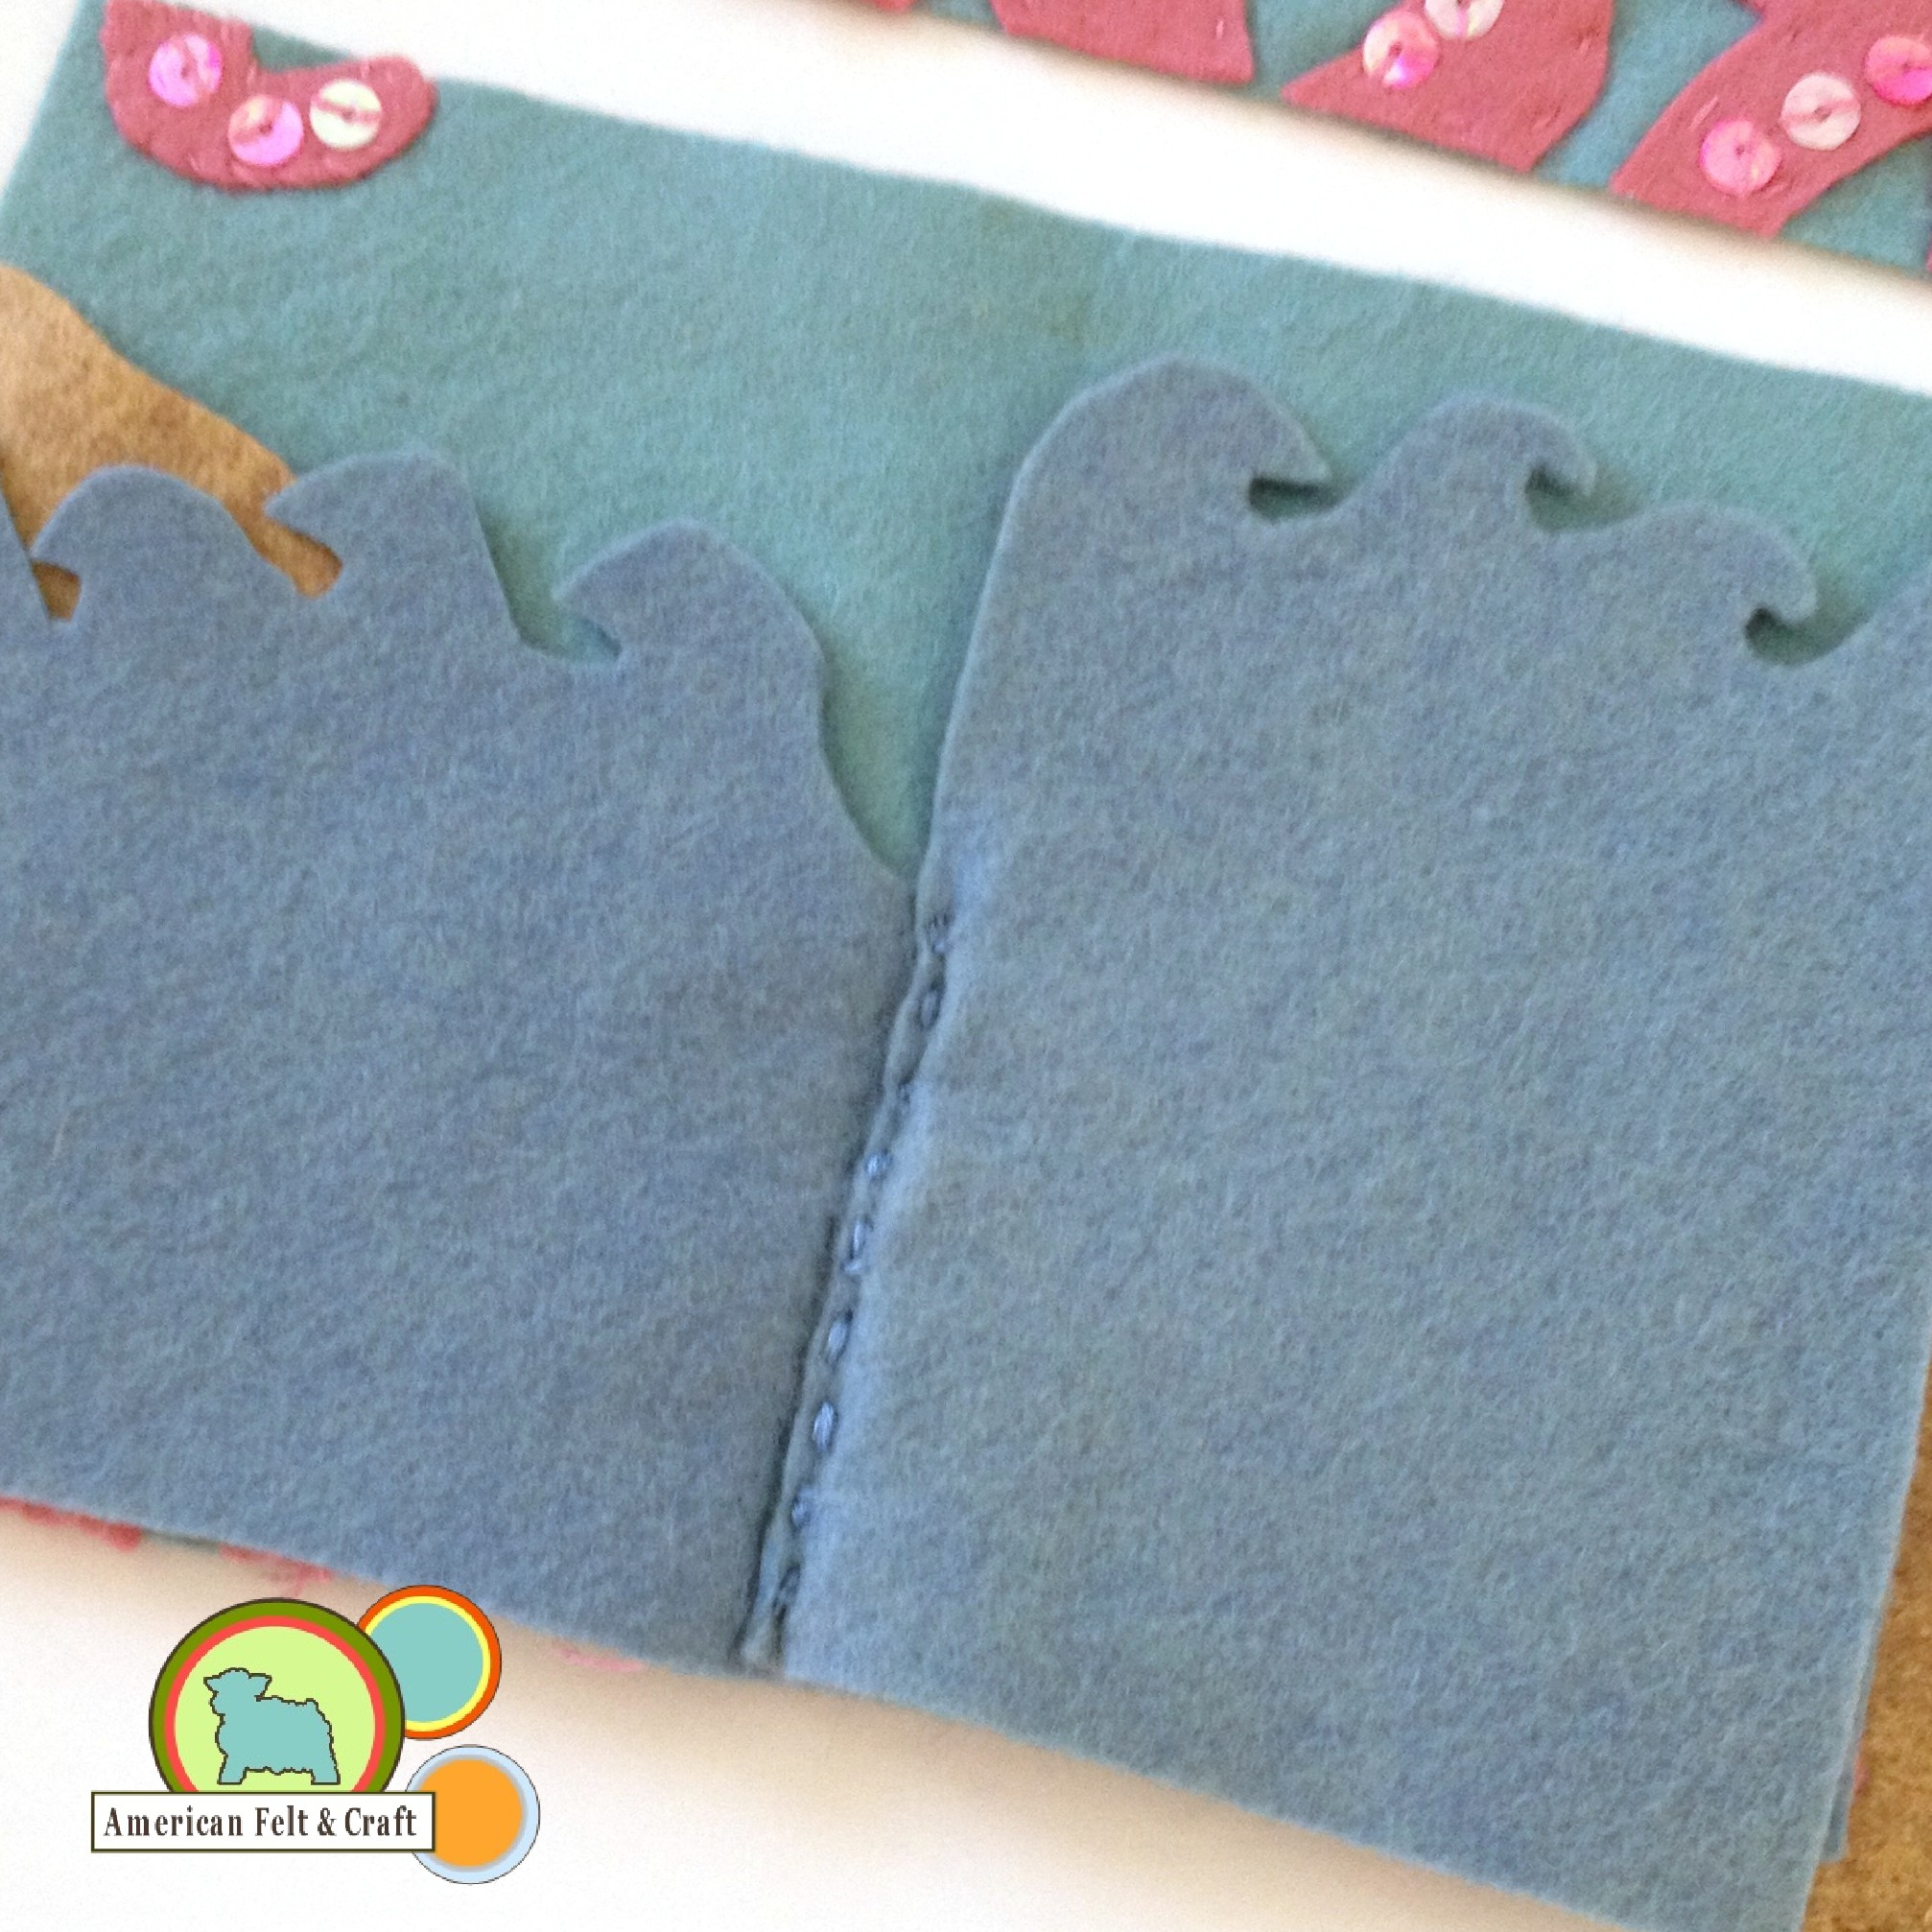 Felt craft book - Add Felt Pages To Needle Book Inside Cover Felt Needle Book Tutorial